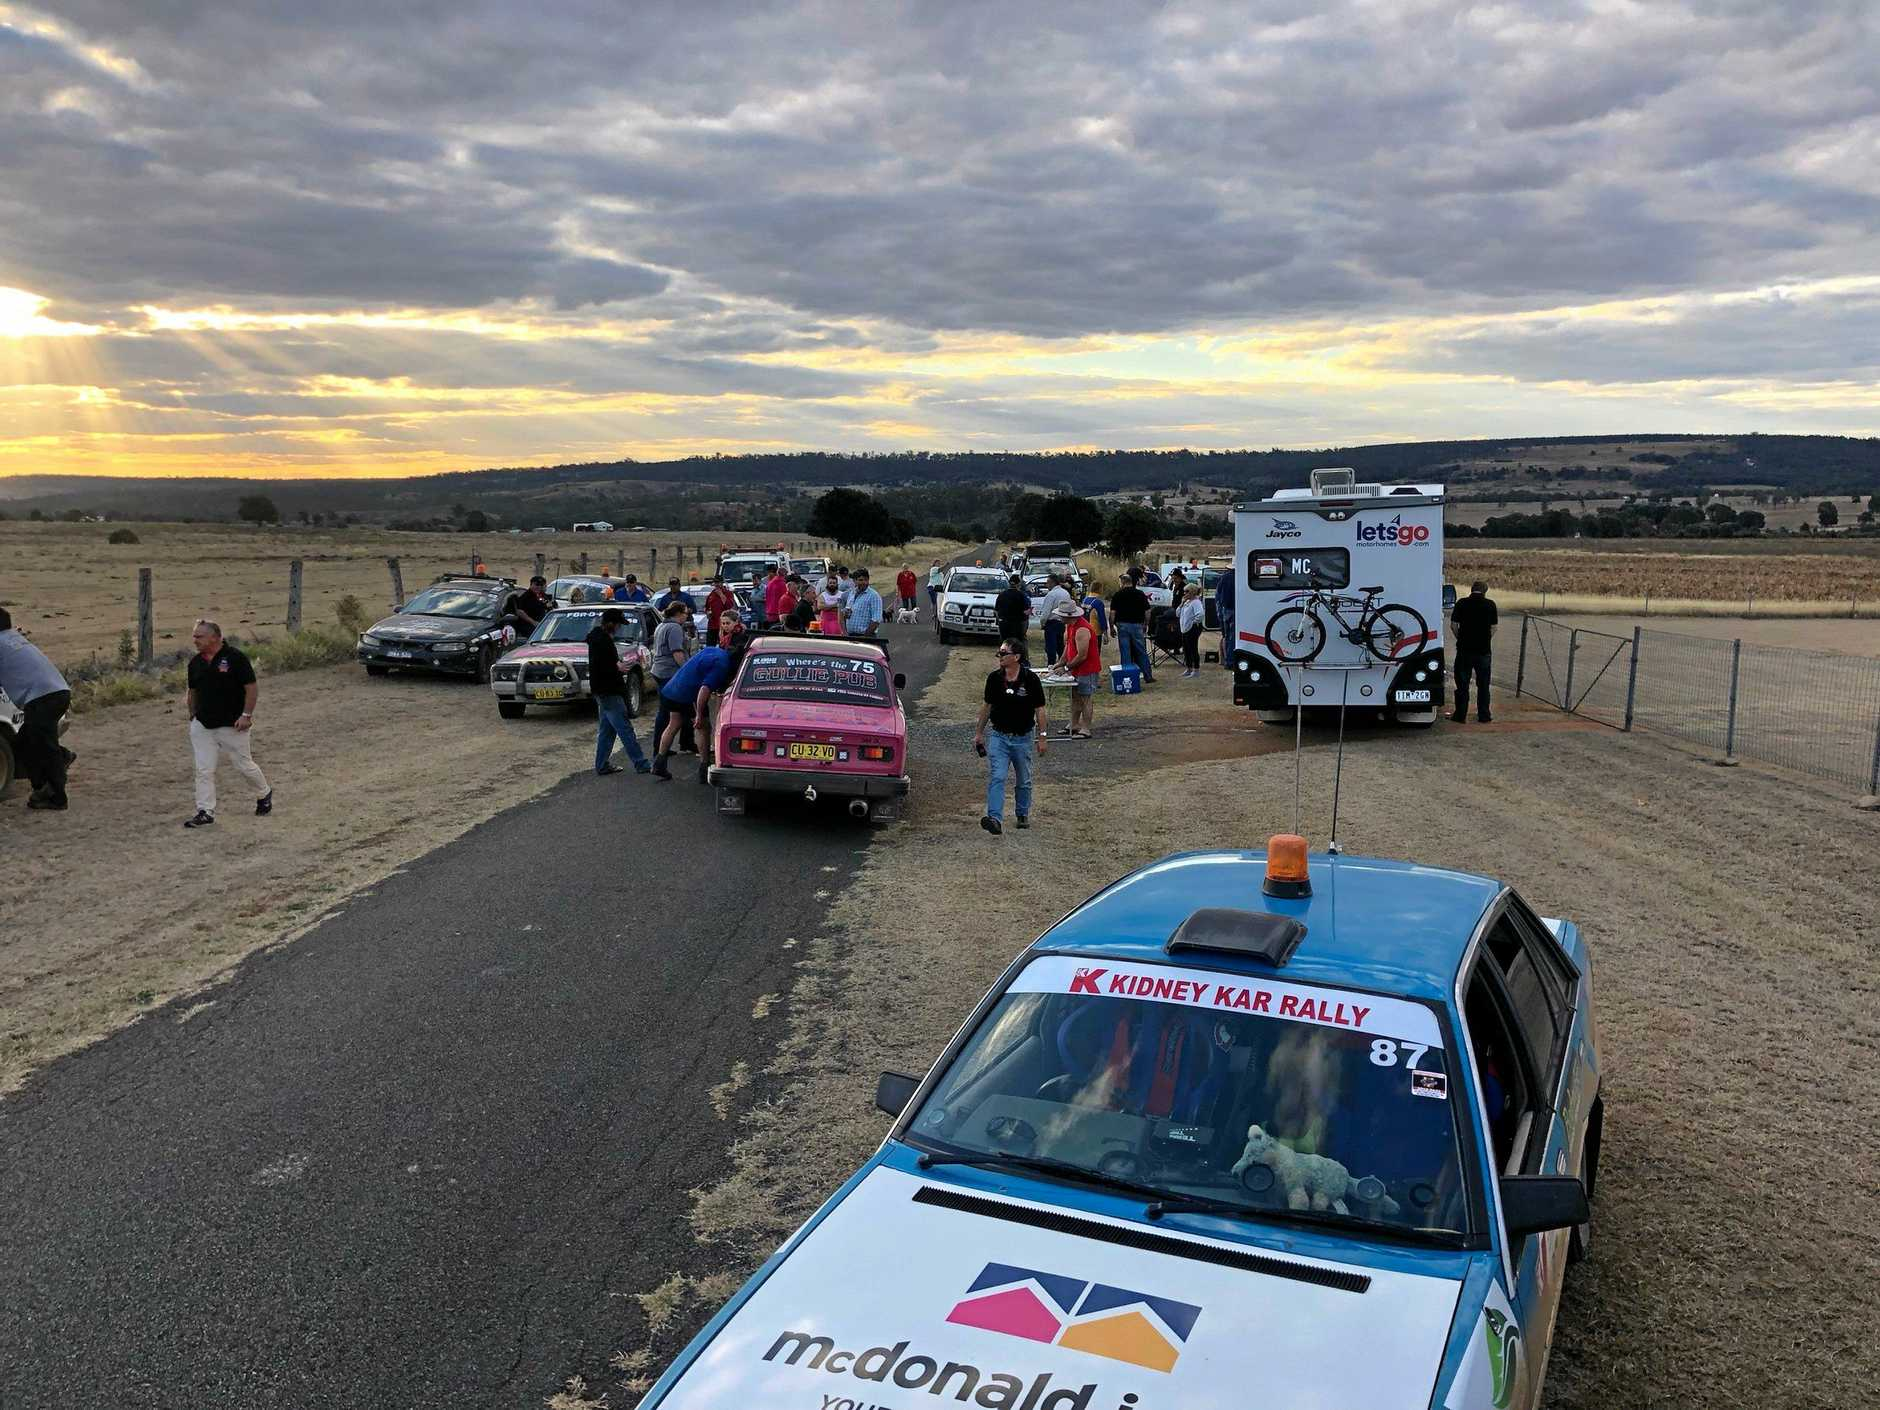 The Kidney Kar Rally's 42 cars will travel a total of 4,000 kms of very dusty roads raising money for the Kidney Kids.